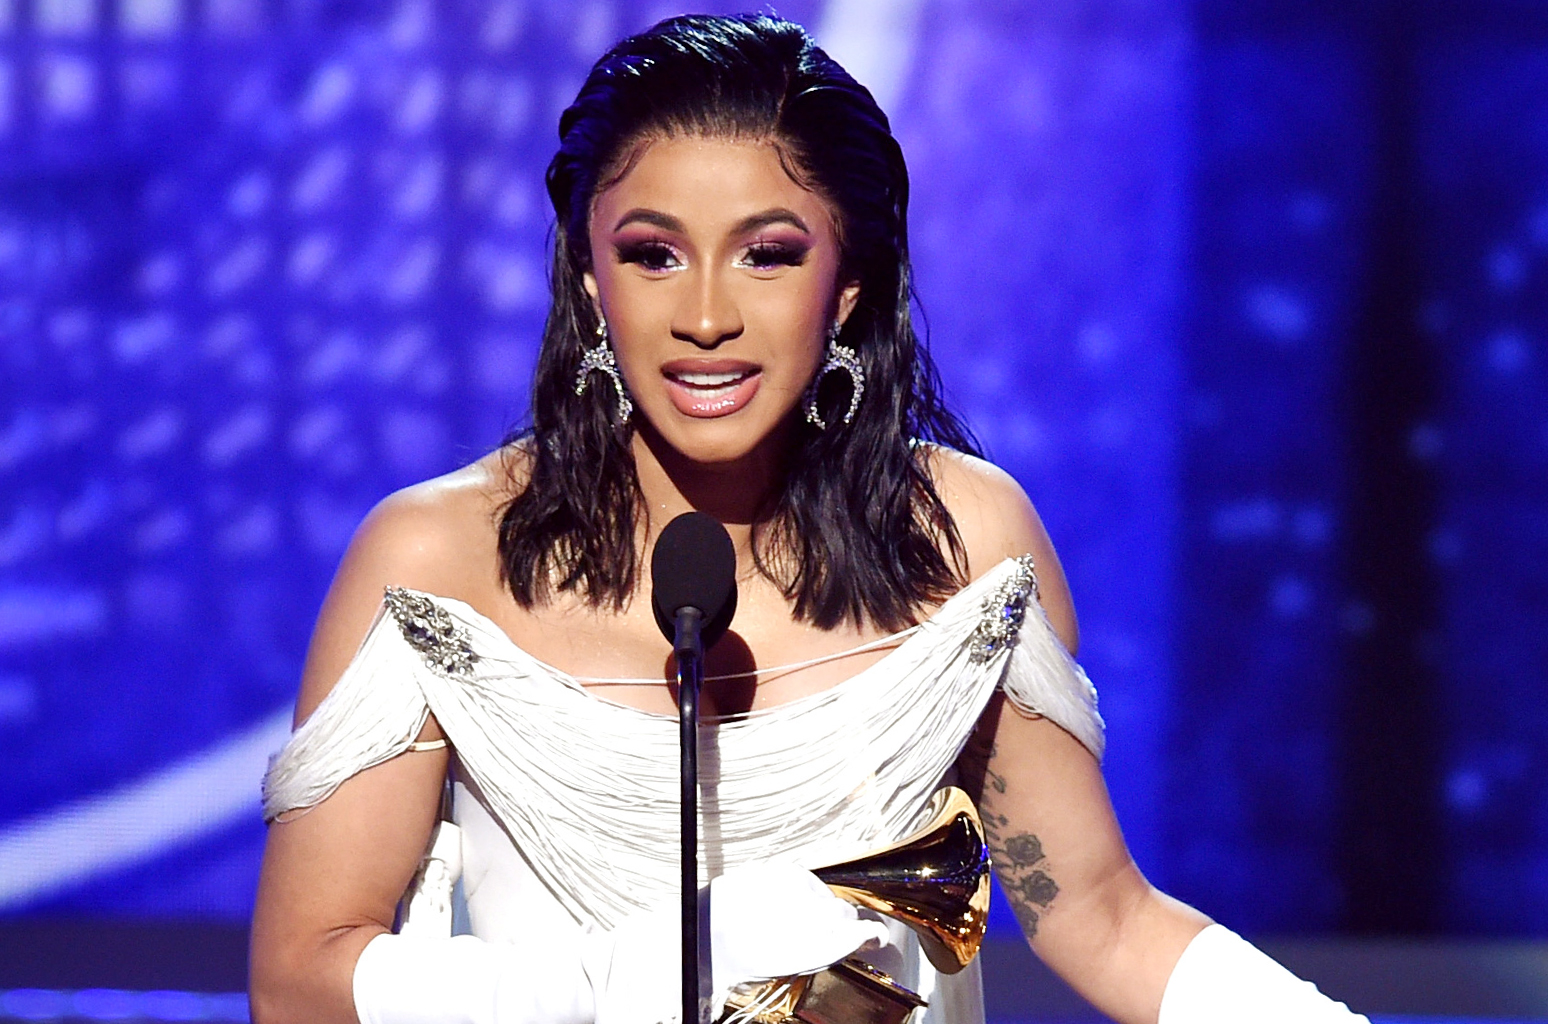 cardi-b-accepts-award-grammys-2019-billboard-1548.jpg